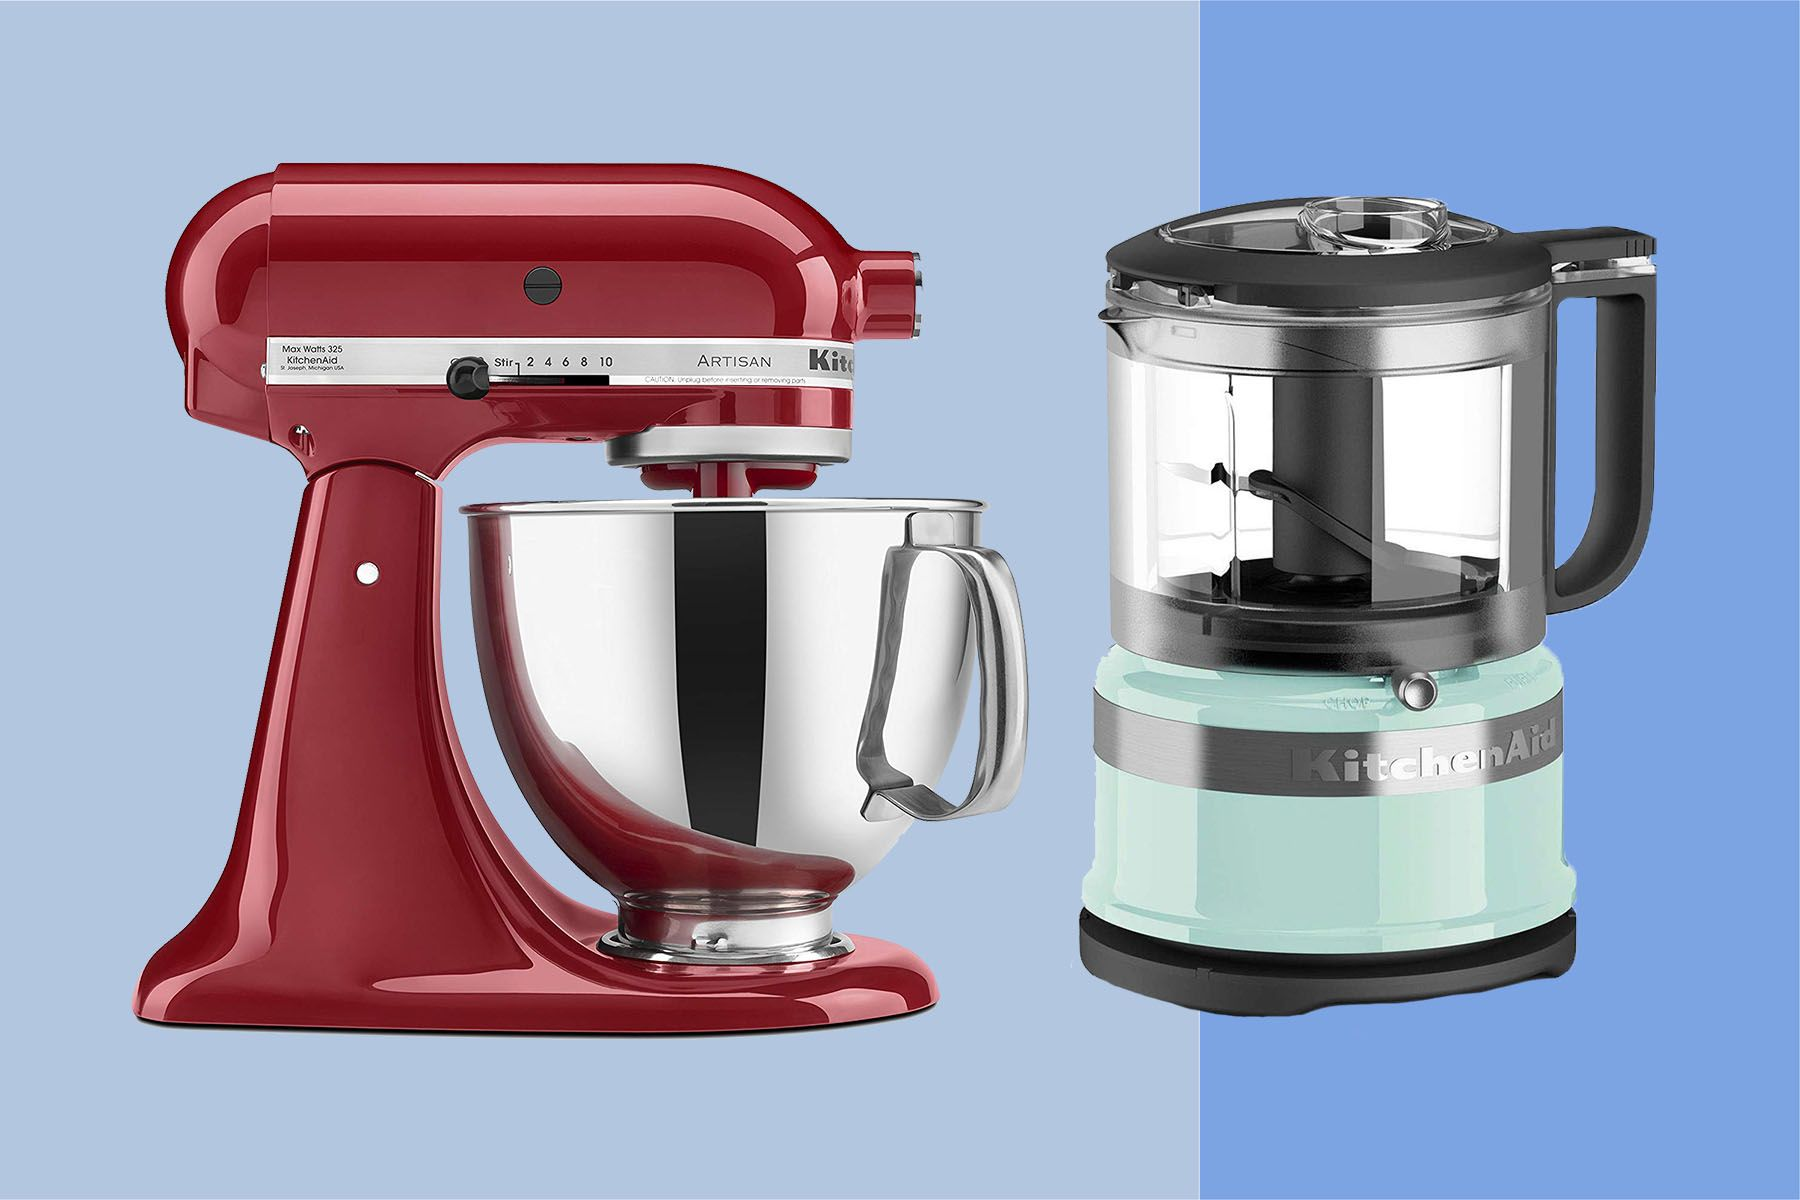 11 of the best kitchenaid appliances and stand mixer